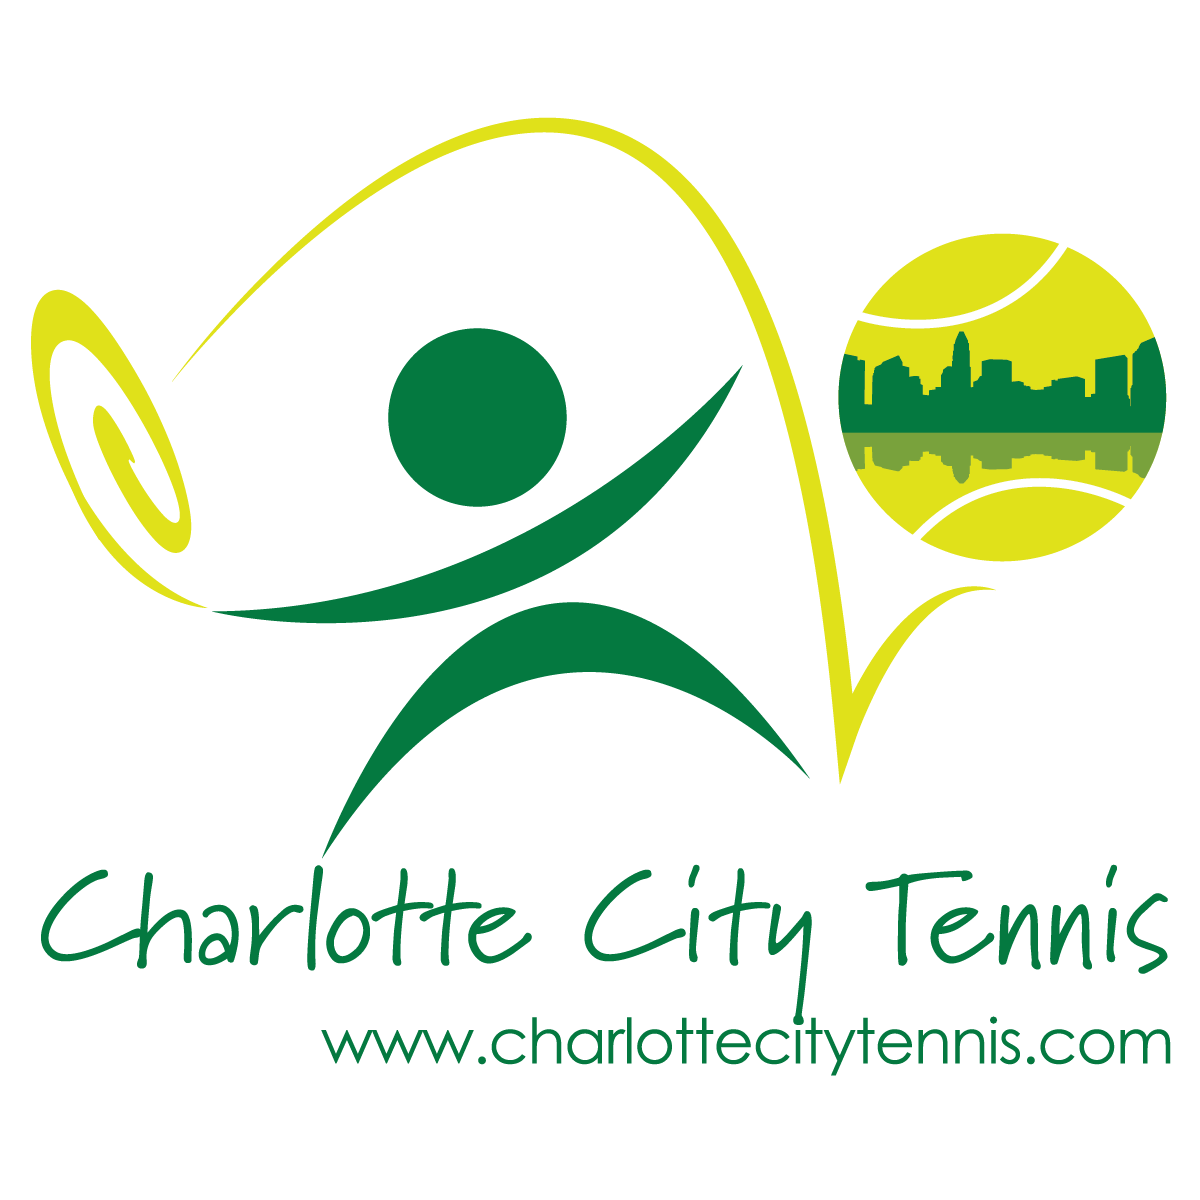 Charlotte City Tennis